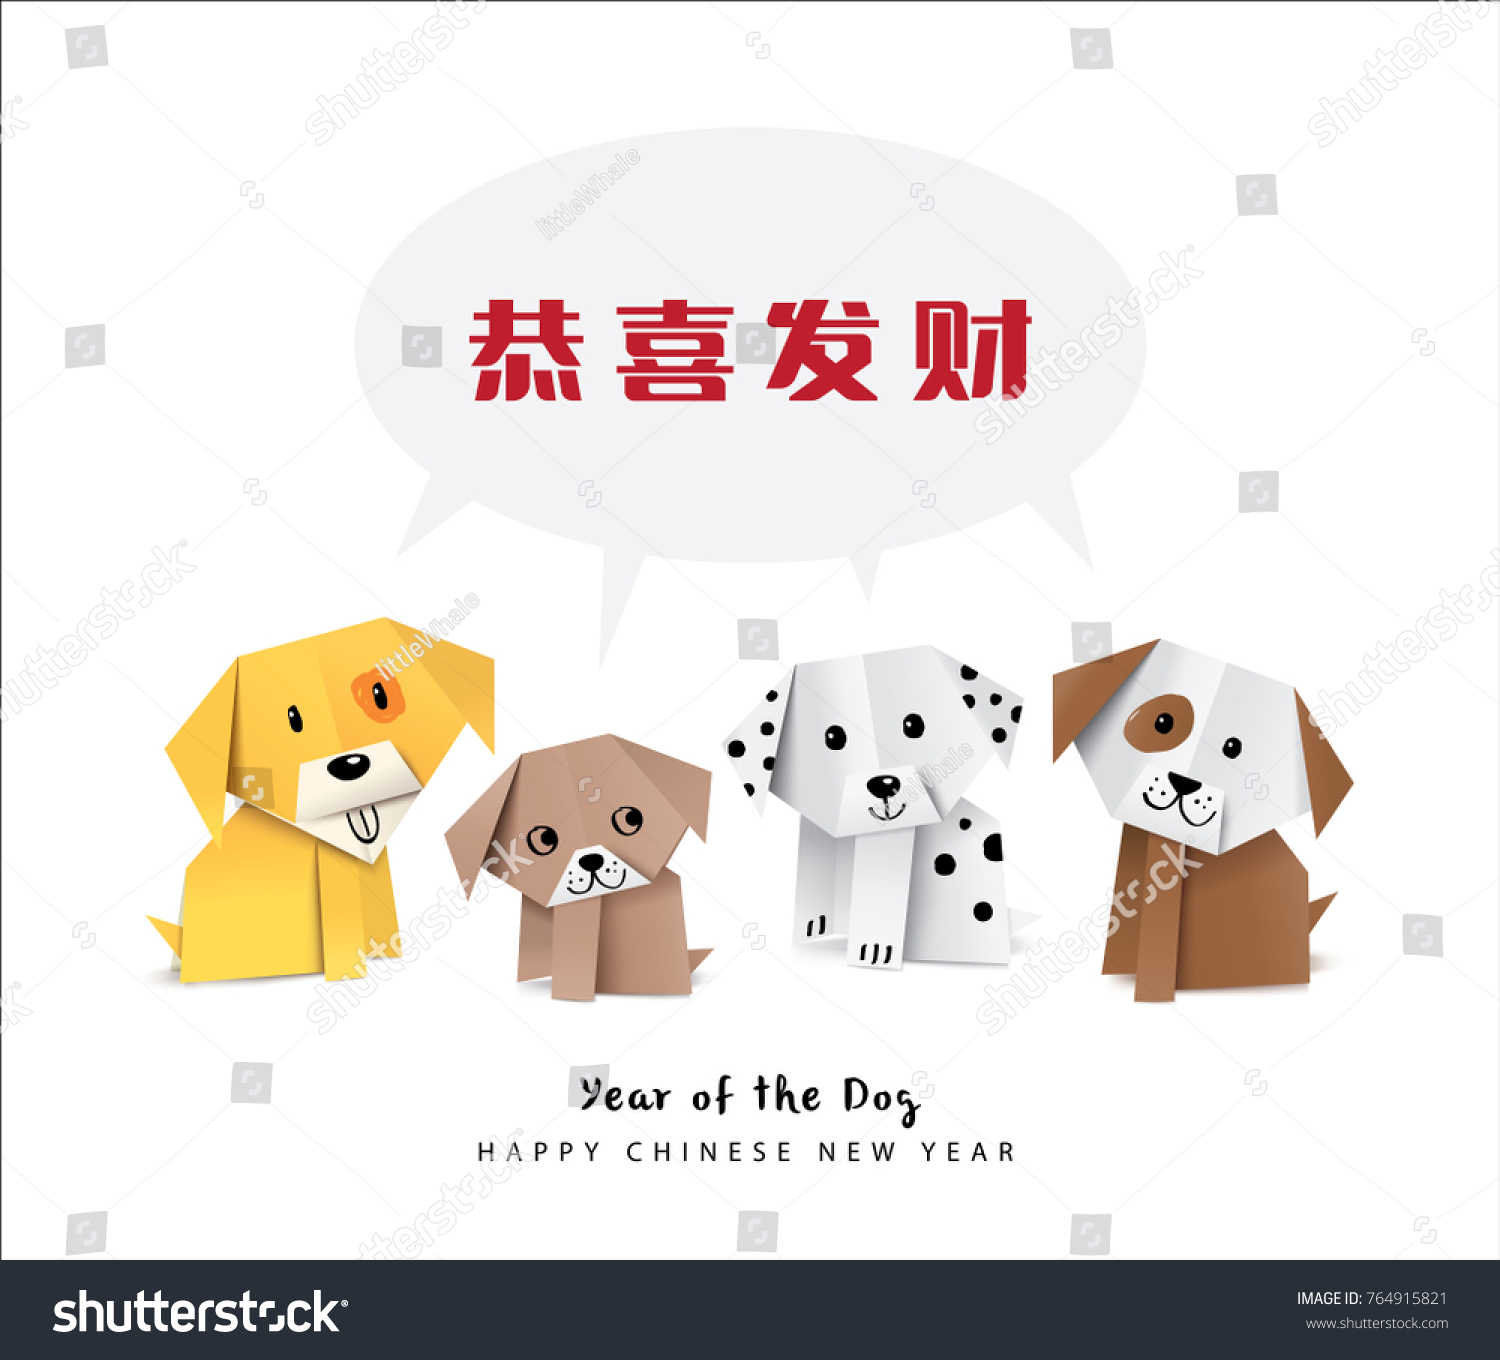 2018 chinese new year greeting card design with origami dogs chinese translation gong